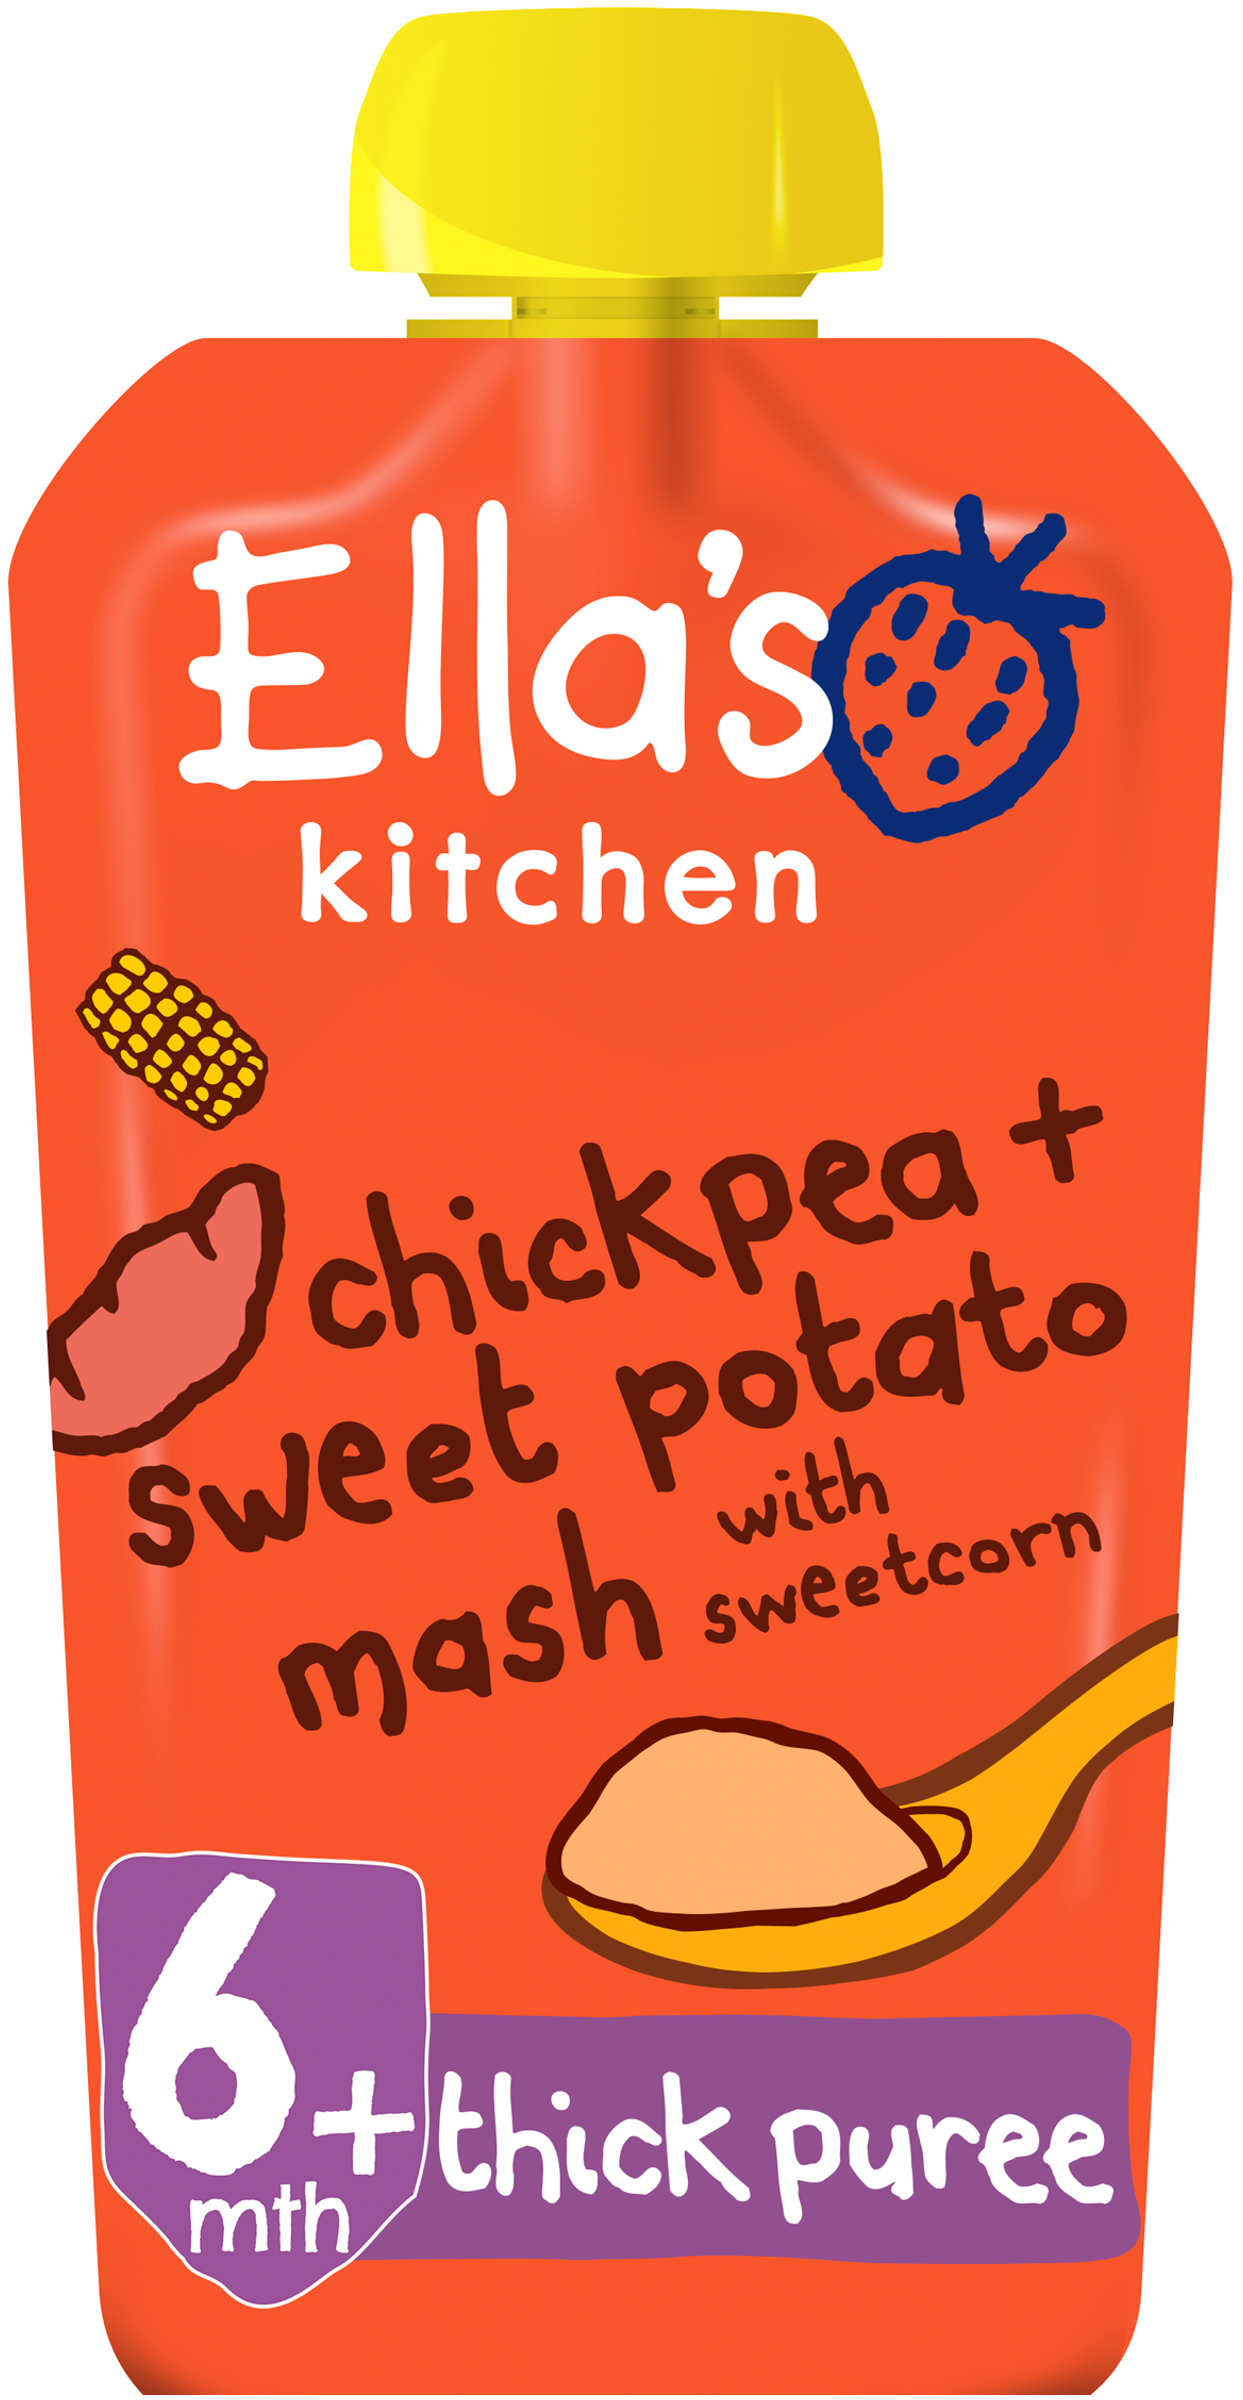 Ellas kitchen chickpea sweetpotato mash sweetcorn pouch front of pack O